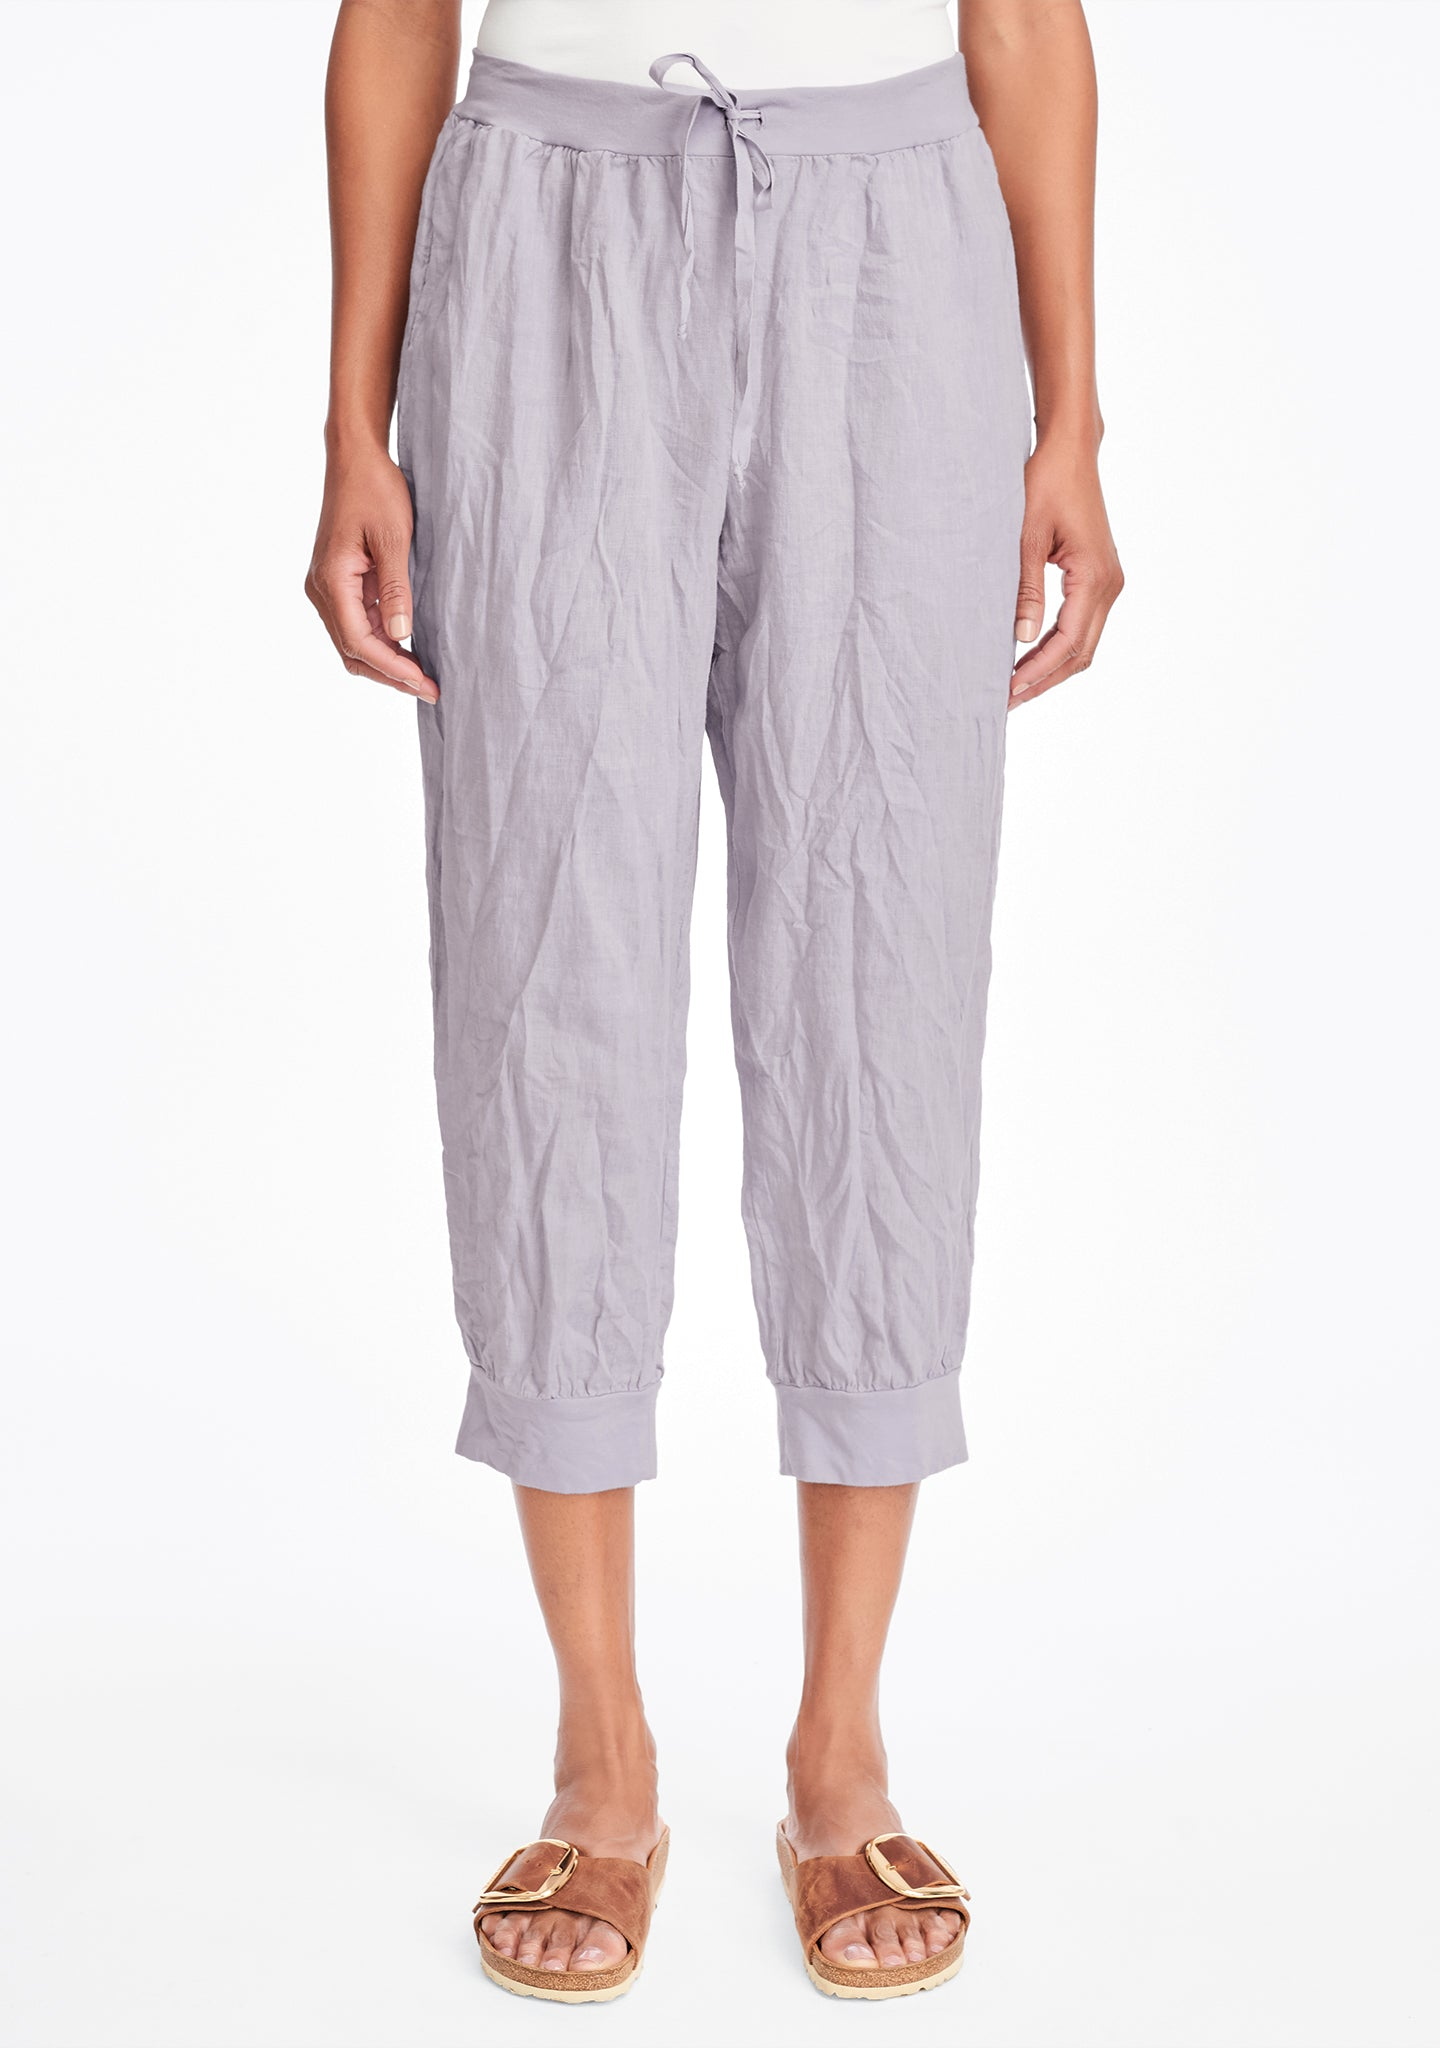 free spirit pant linen drawstring pants purple